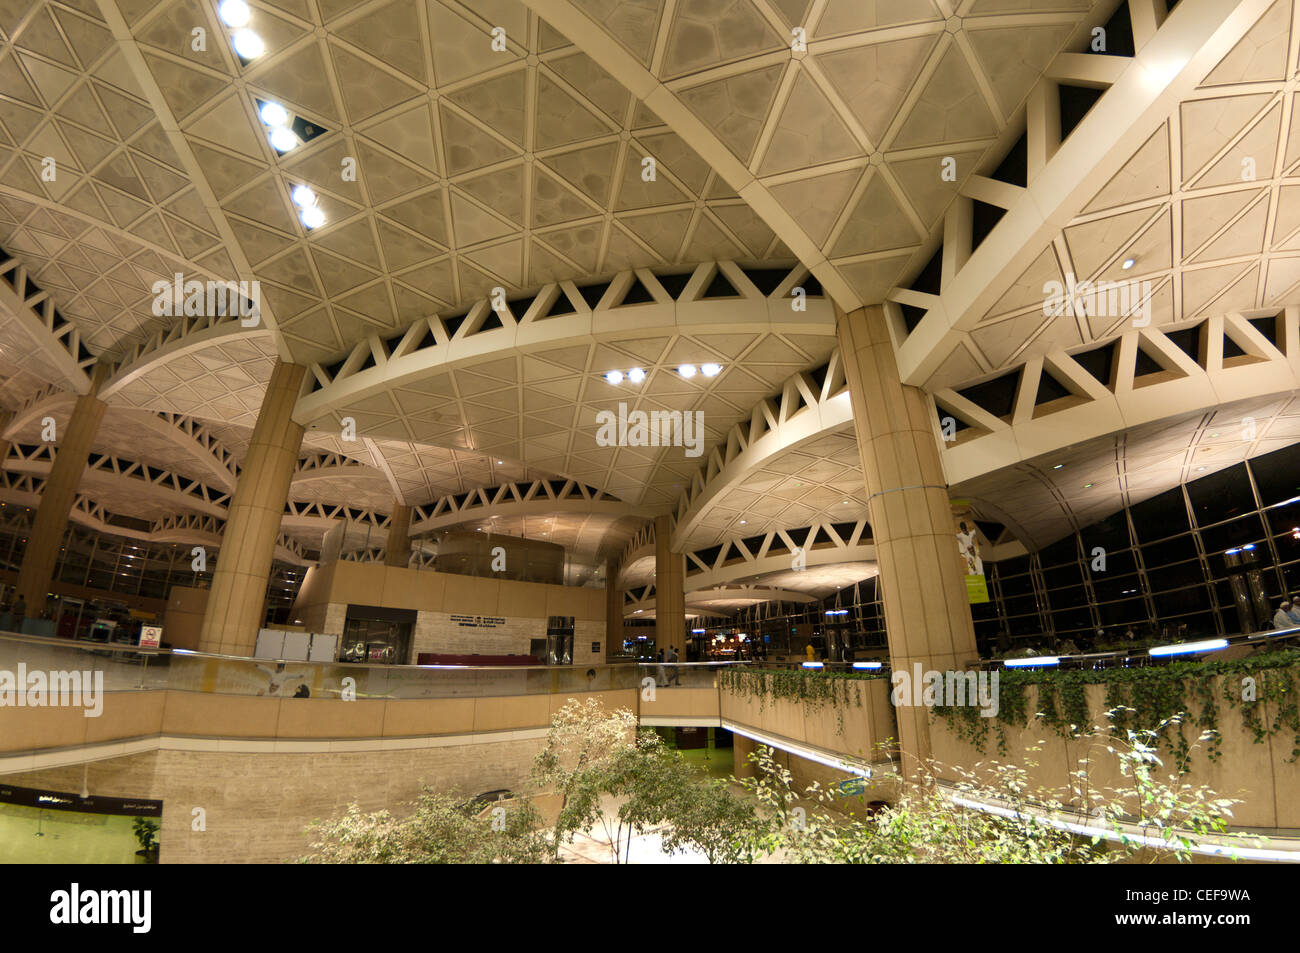 L'aéroport de Riyad en Arabie Saoudite, Photo Stock